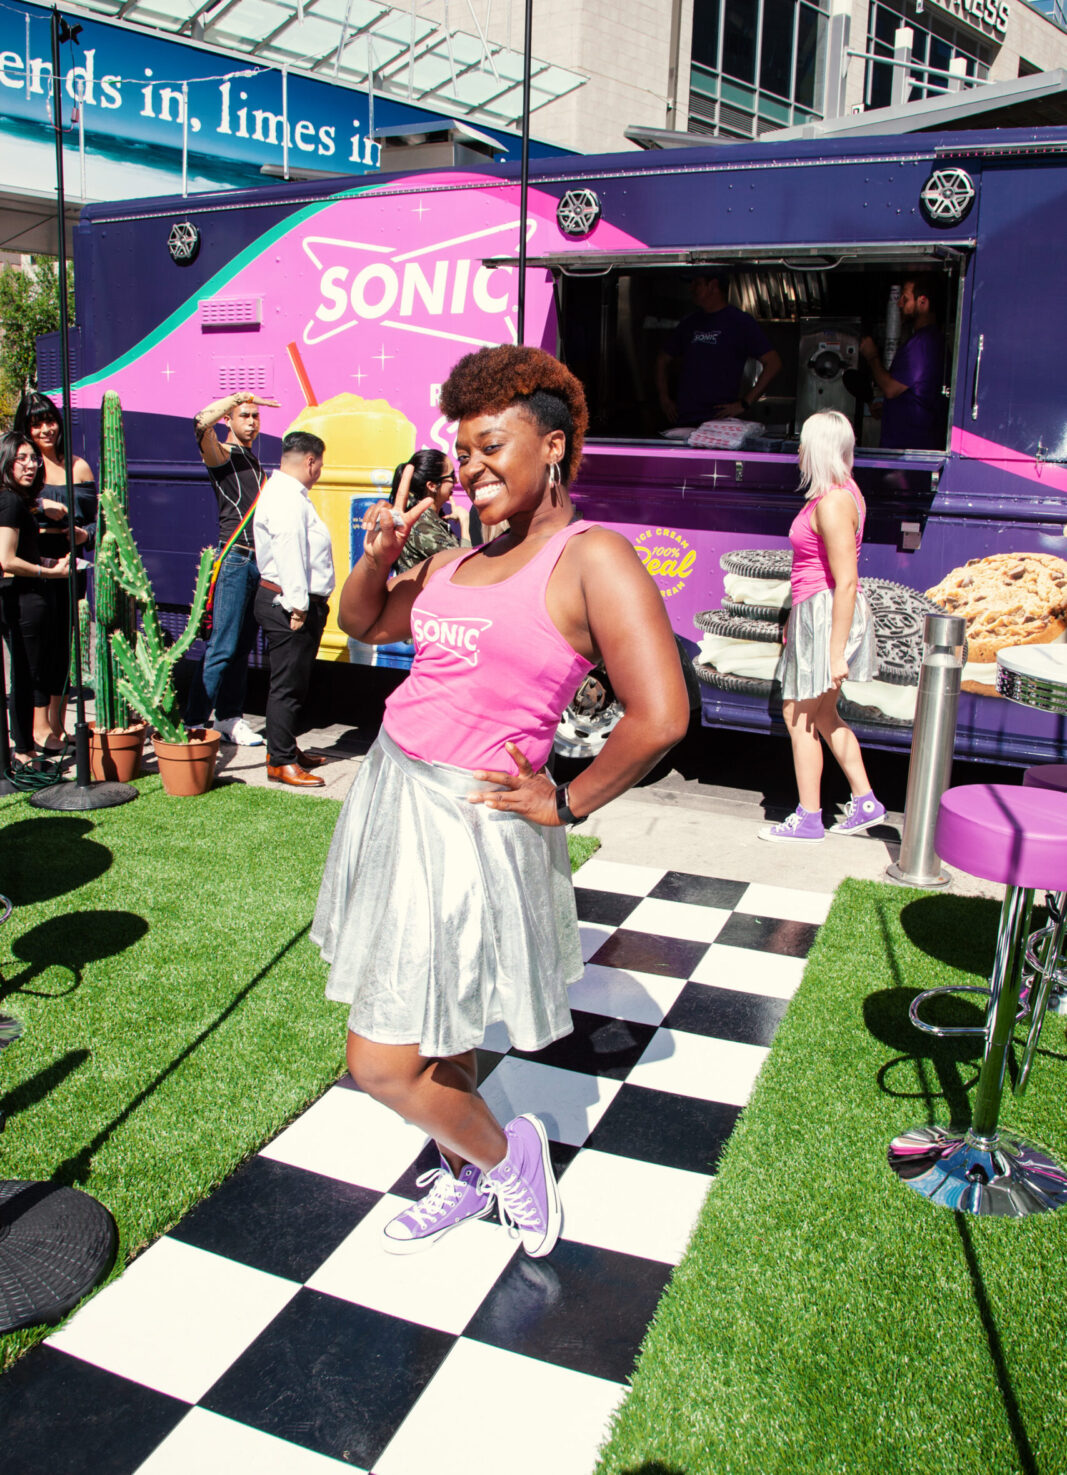 sonic block party food truck by experiential marketing agency